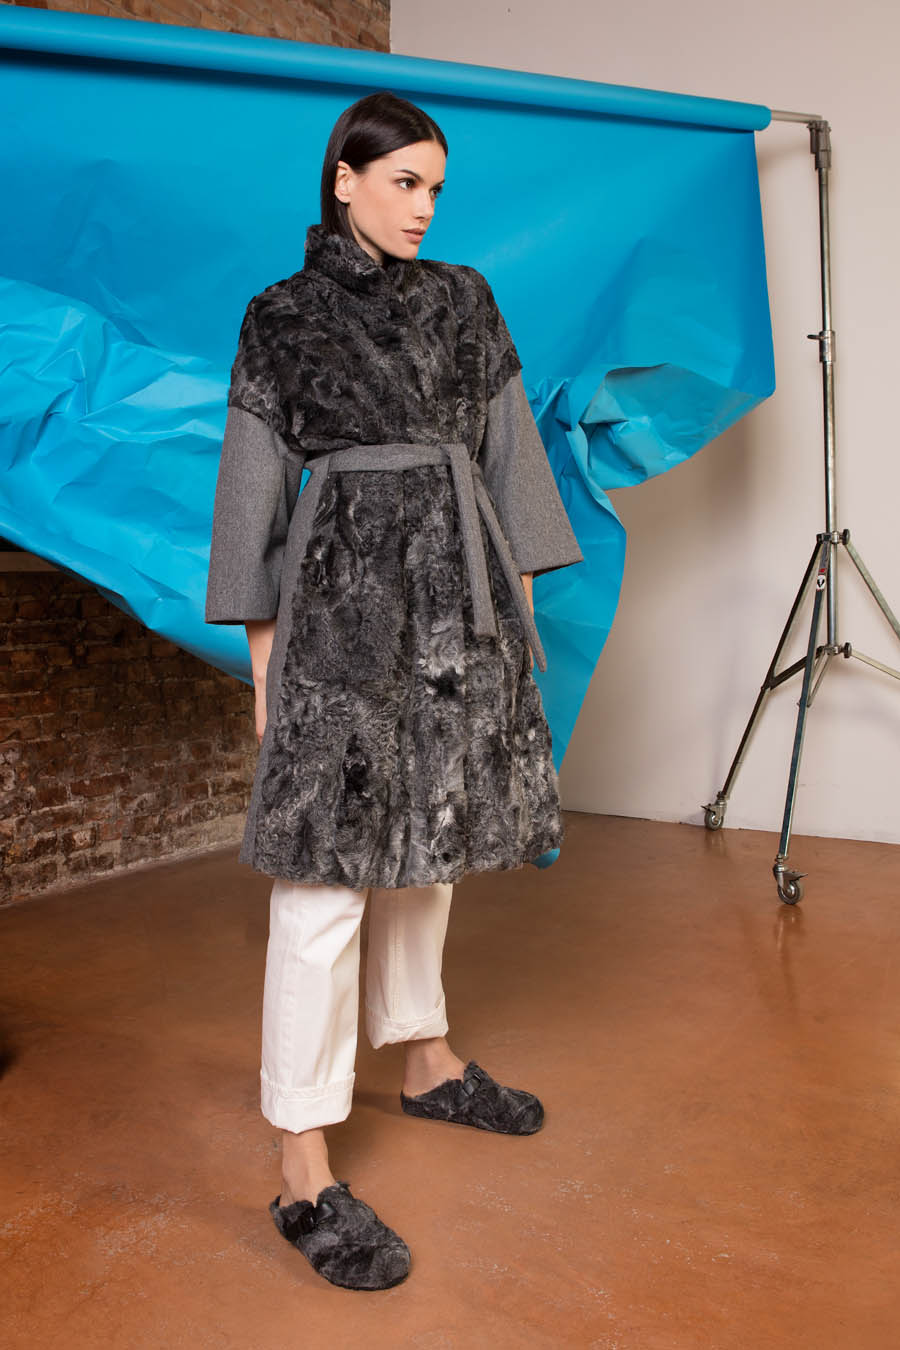 59 P1714P 03 01 giovi pelliccia fur grey - Fall Winter 2019-20